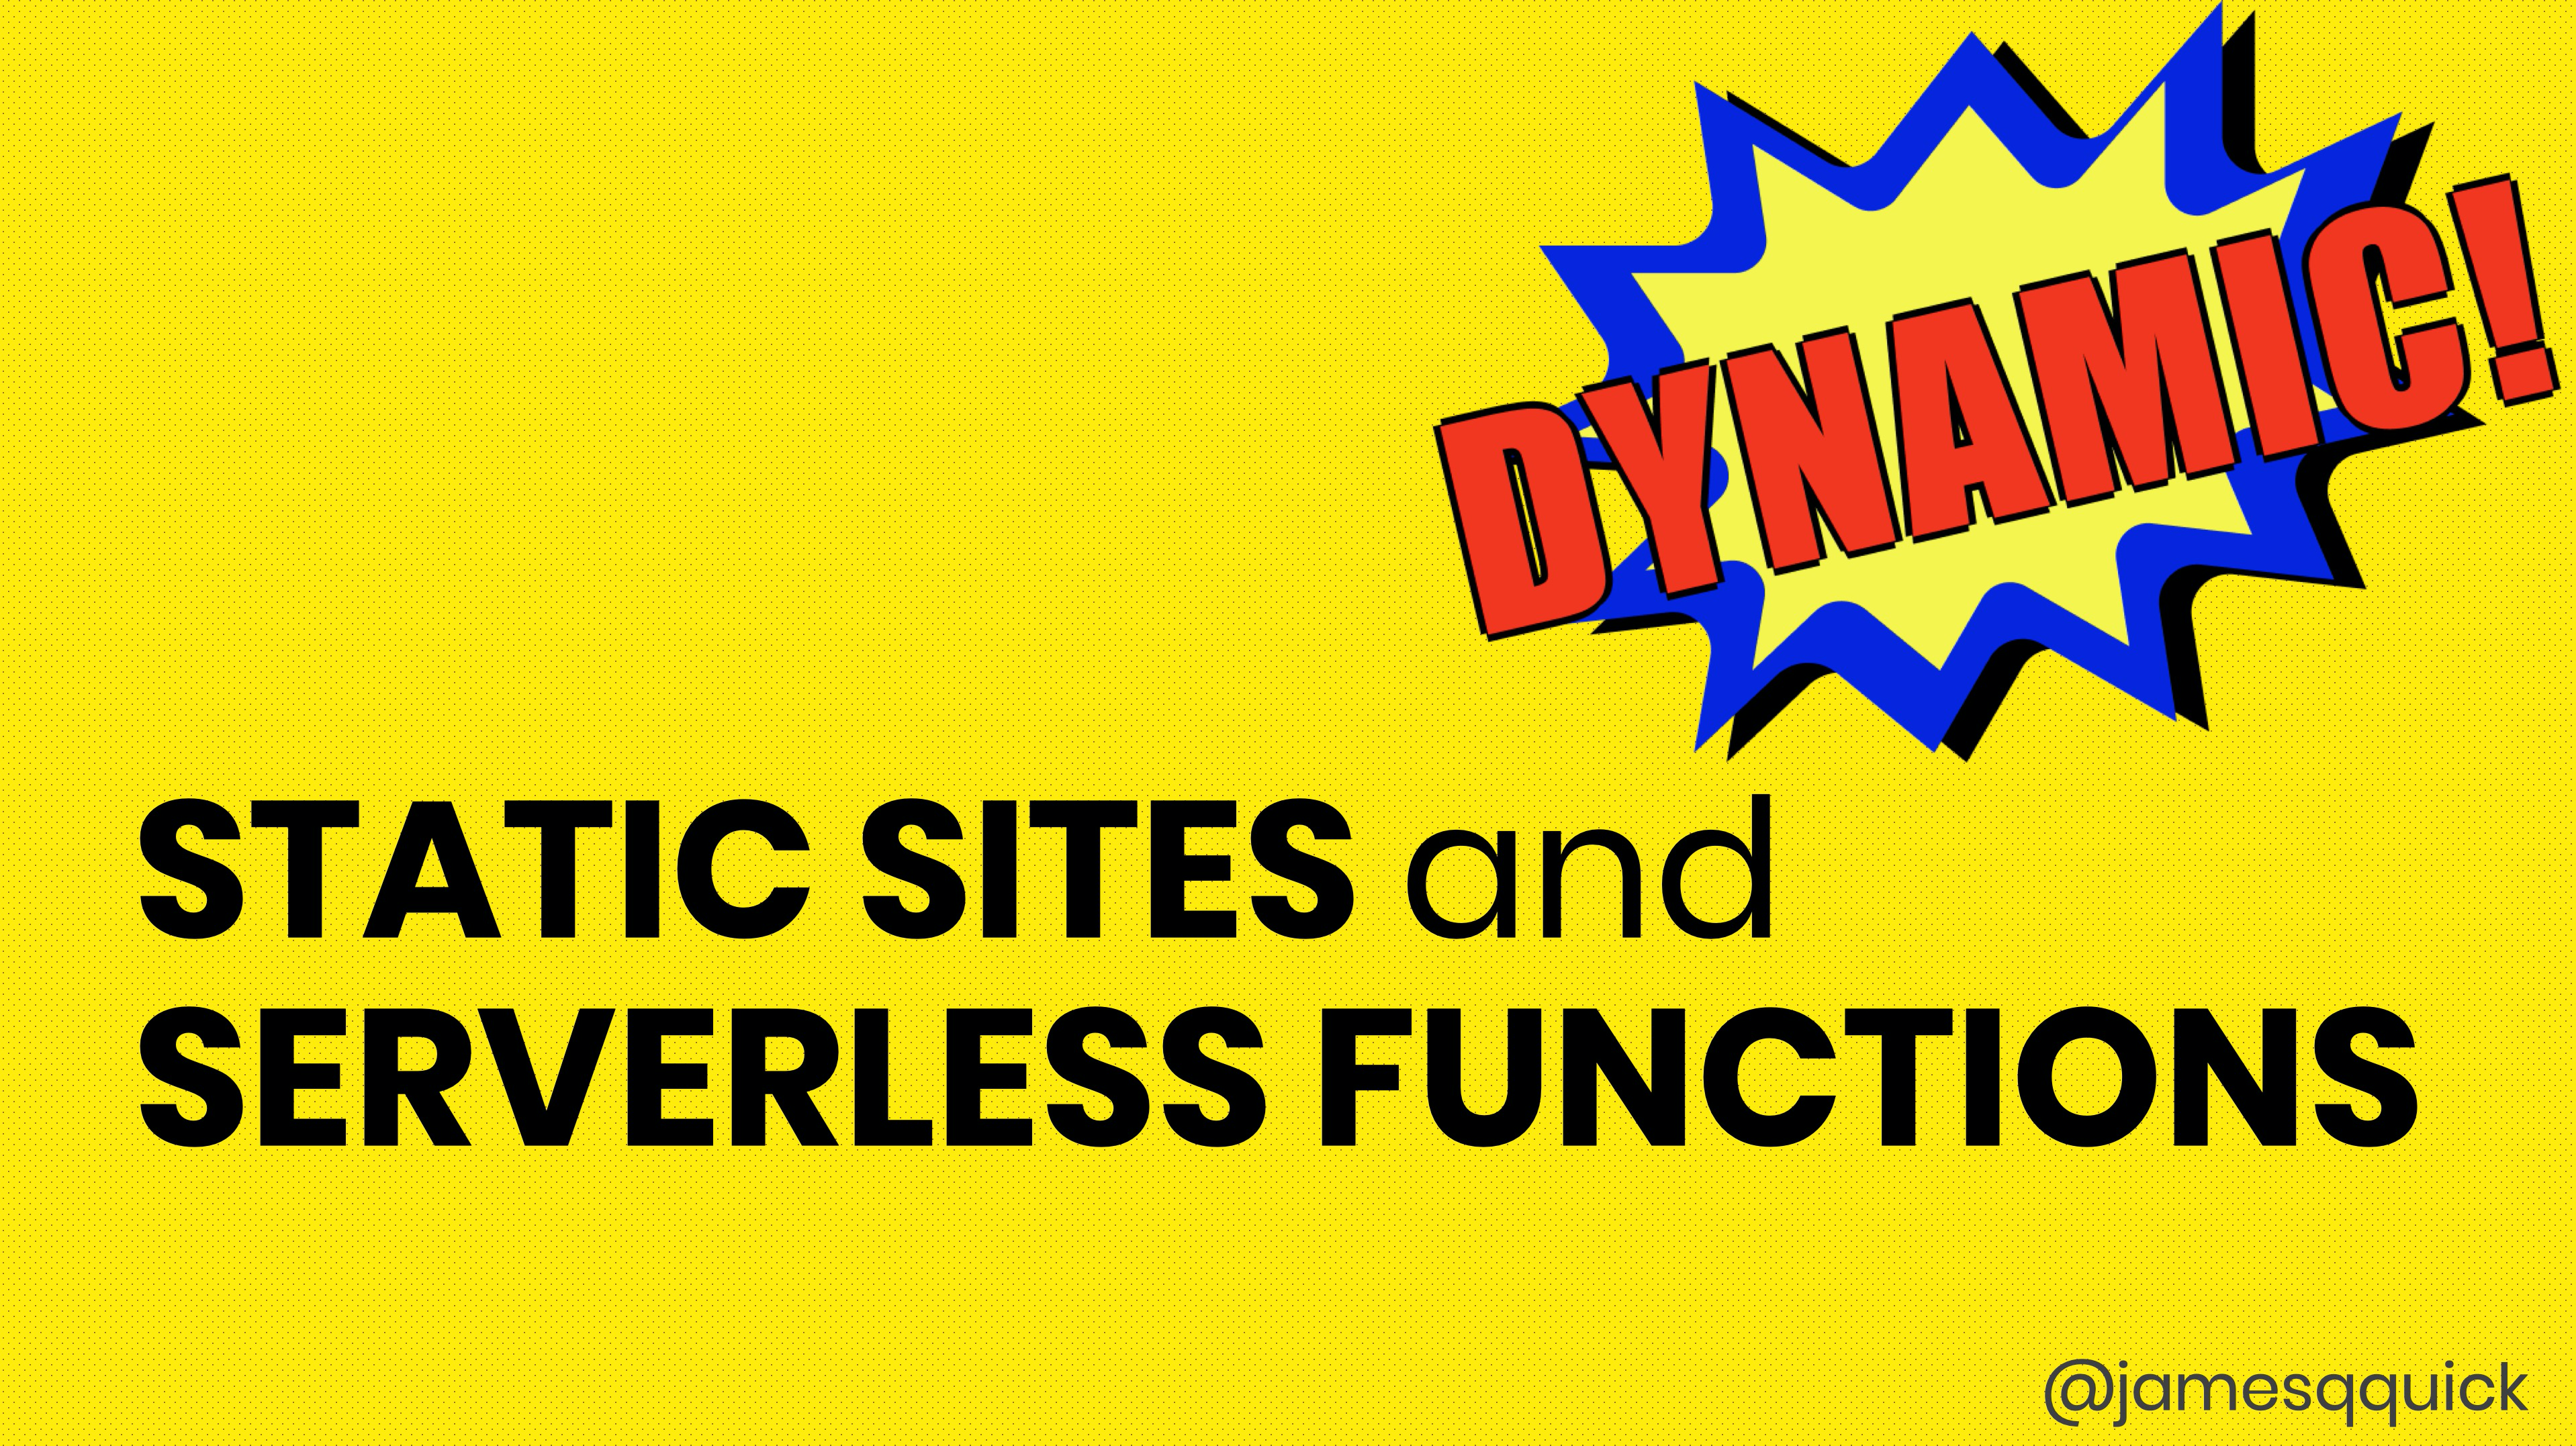 Static Sites and Serverless Functions - A Dynamic Combination